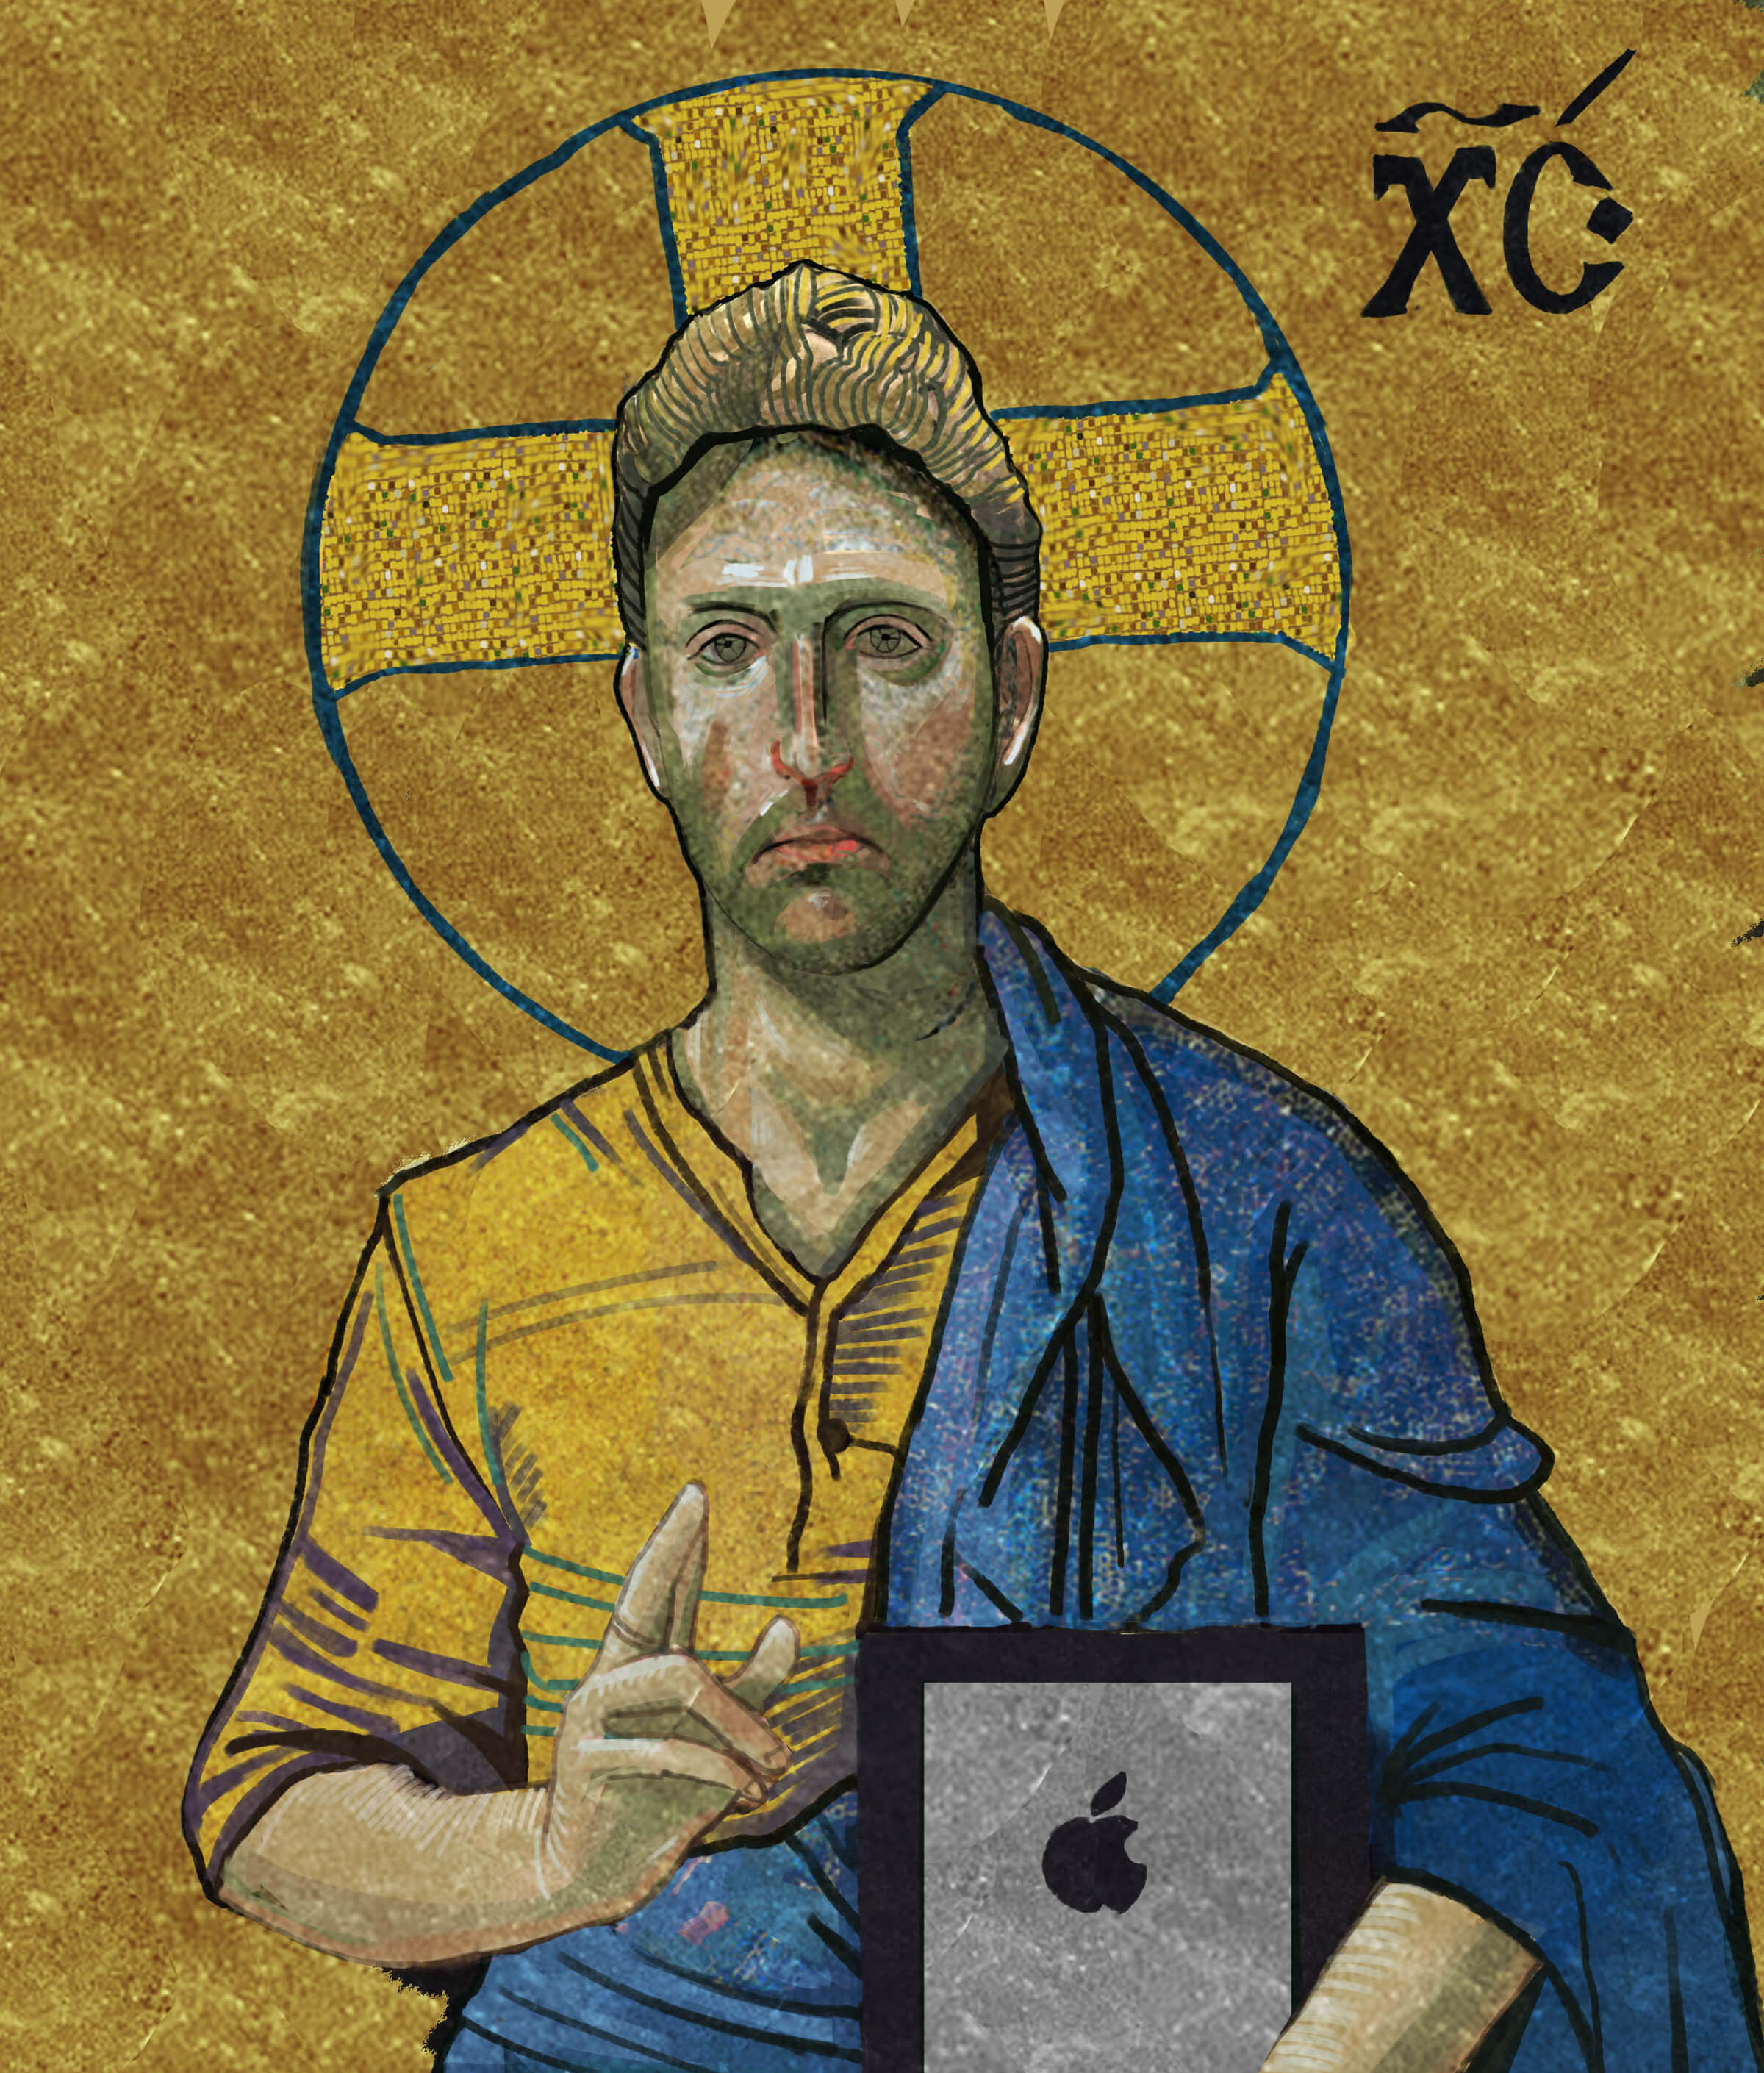 traditional painting of haloed man in a yellow shirt and blue robe holding an ipad